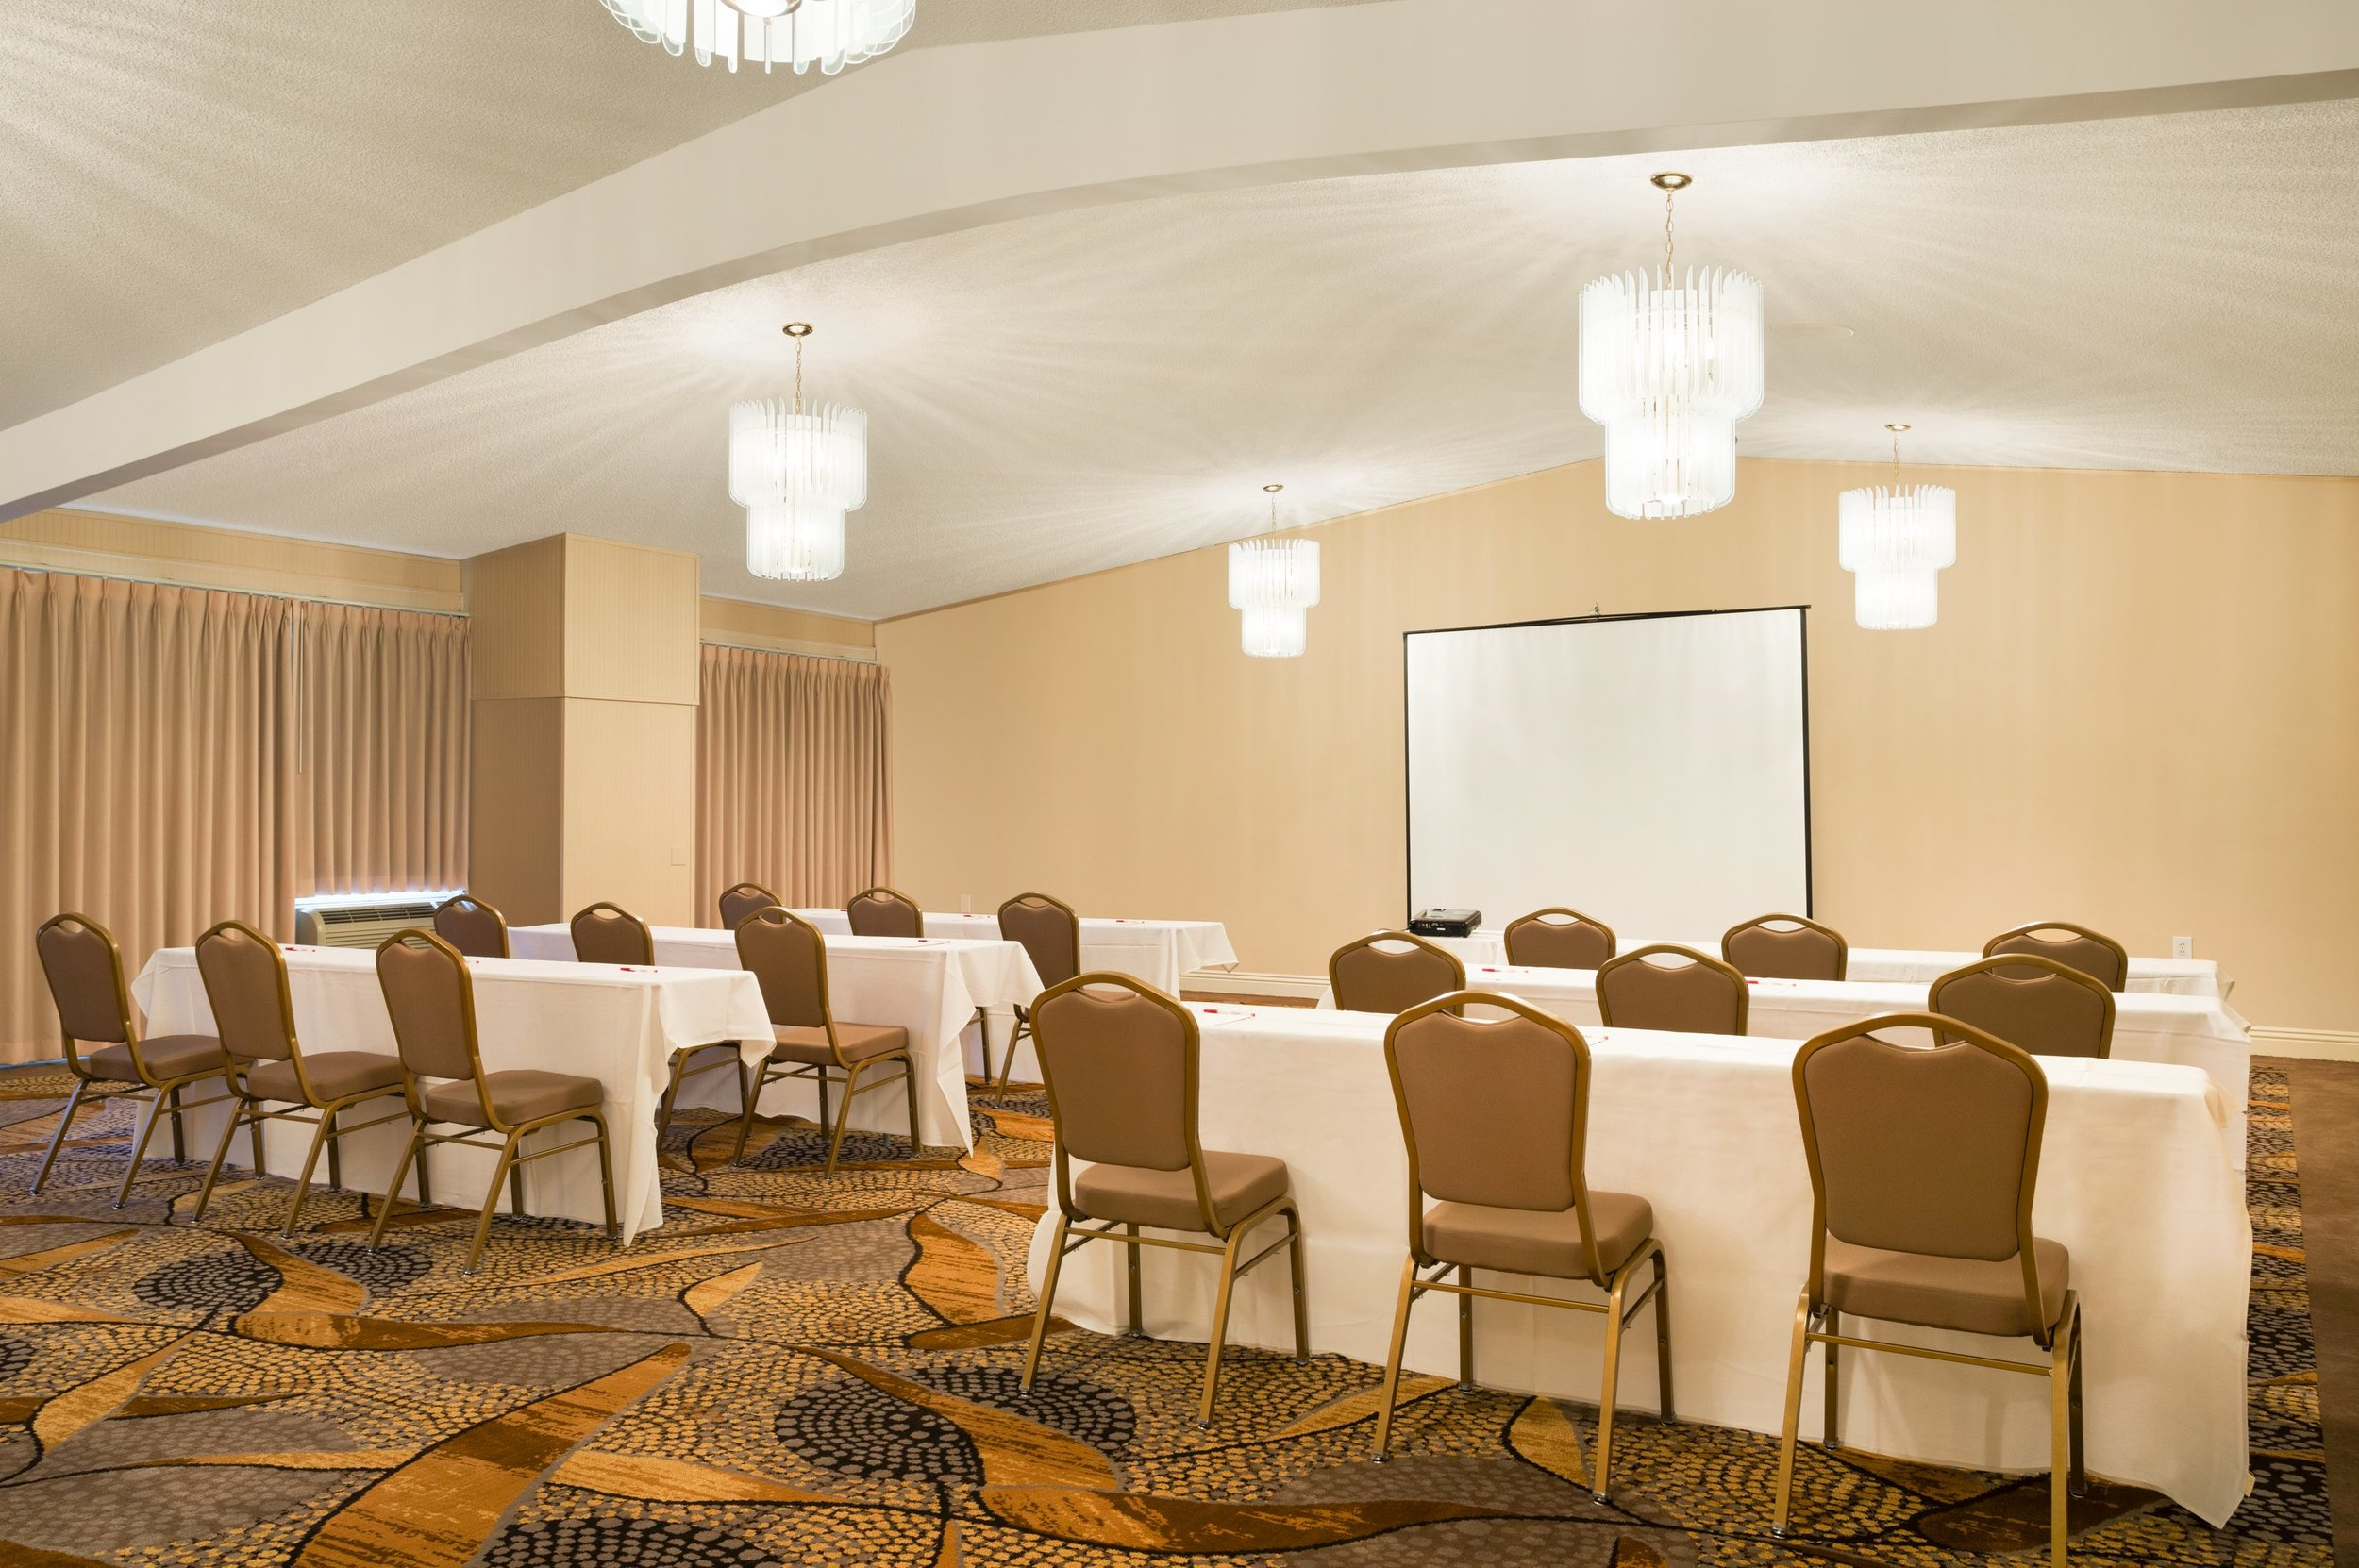 Meeting Rooms - At our Ramada Hotel & Conference Centre, we offer 4 unique meeting venues in San Diego that can accommodate anywhere from 20 to 500 guests. Our large Madeira Room is most commonly used for large conferences and weddings, and can be set up in a range of styles to accommodate your next large event. Our Lisbon Room is slightly smaller and is ideal for a large group meeting. Next, we have the Captain Maury Room, which, at 900 square feet, is ideal for medium sized social and professional gatherings. For an intimate meeting or conference, enjoy our Balboa Room!Learn more about our meeting room sizes here.